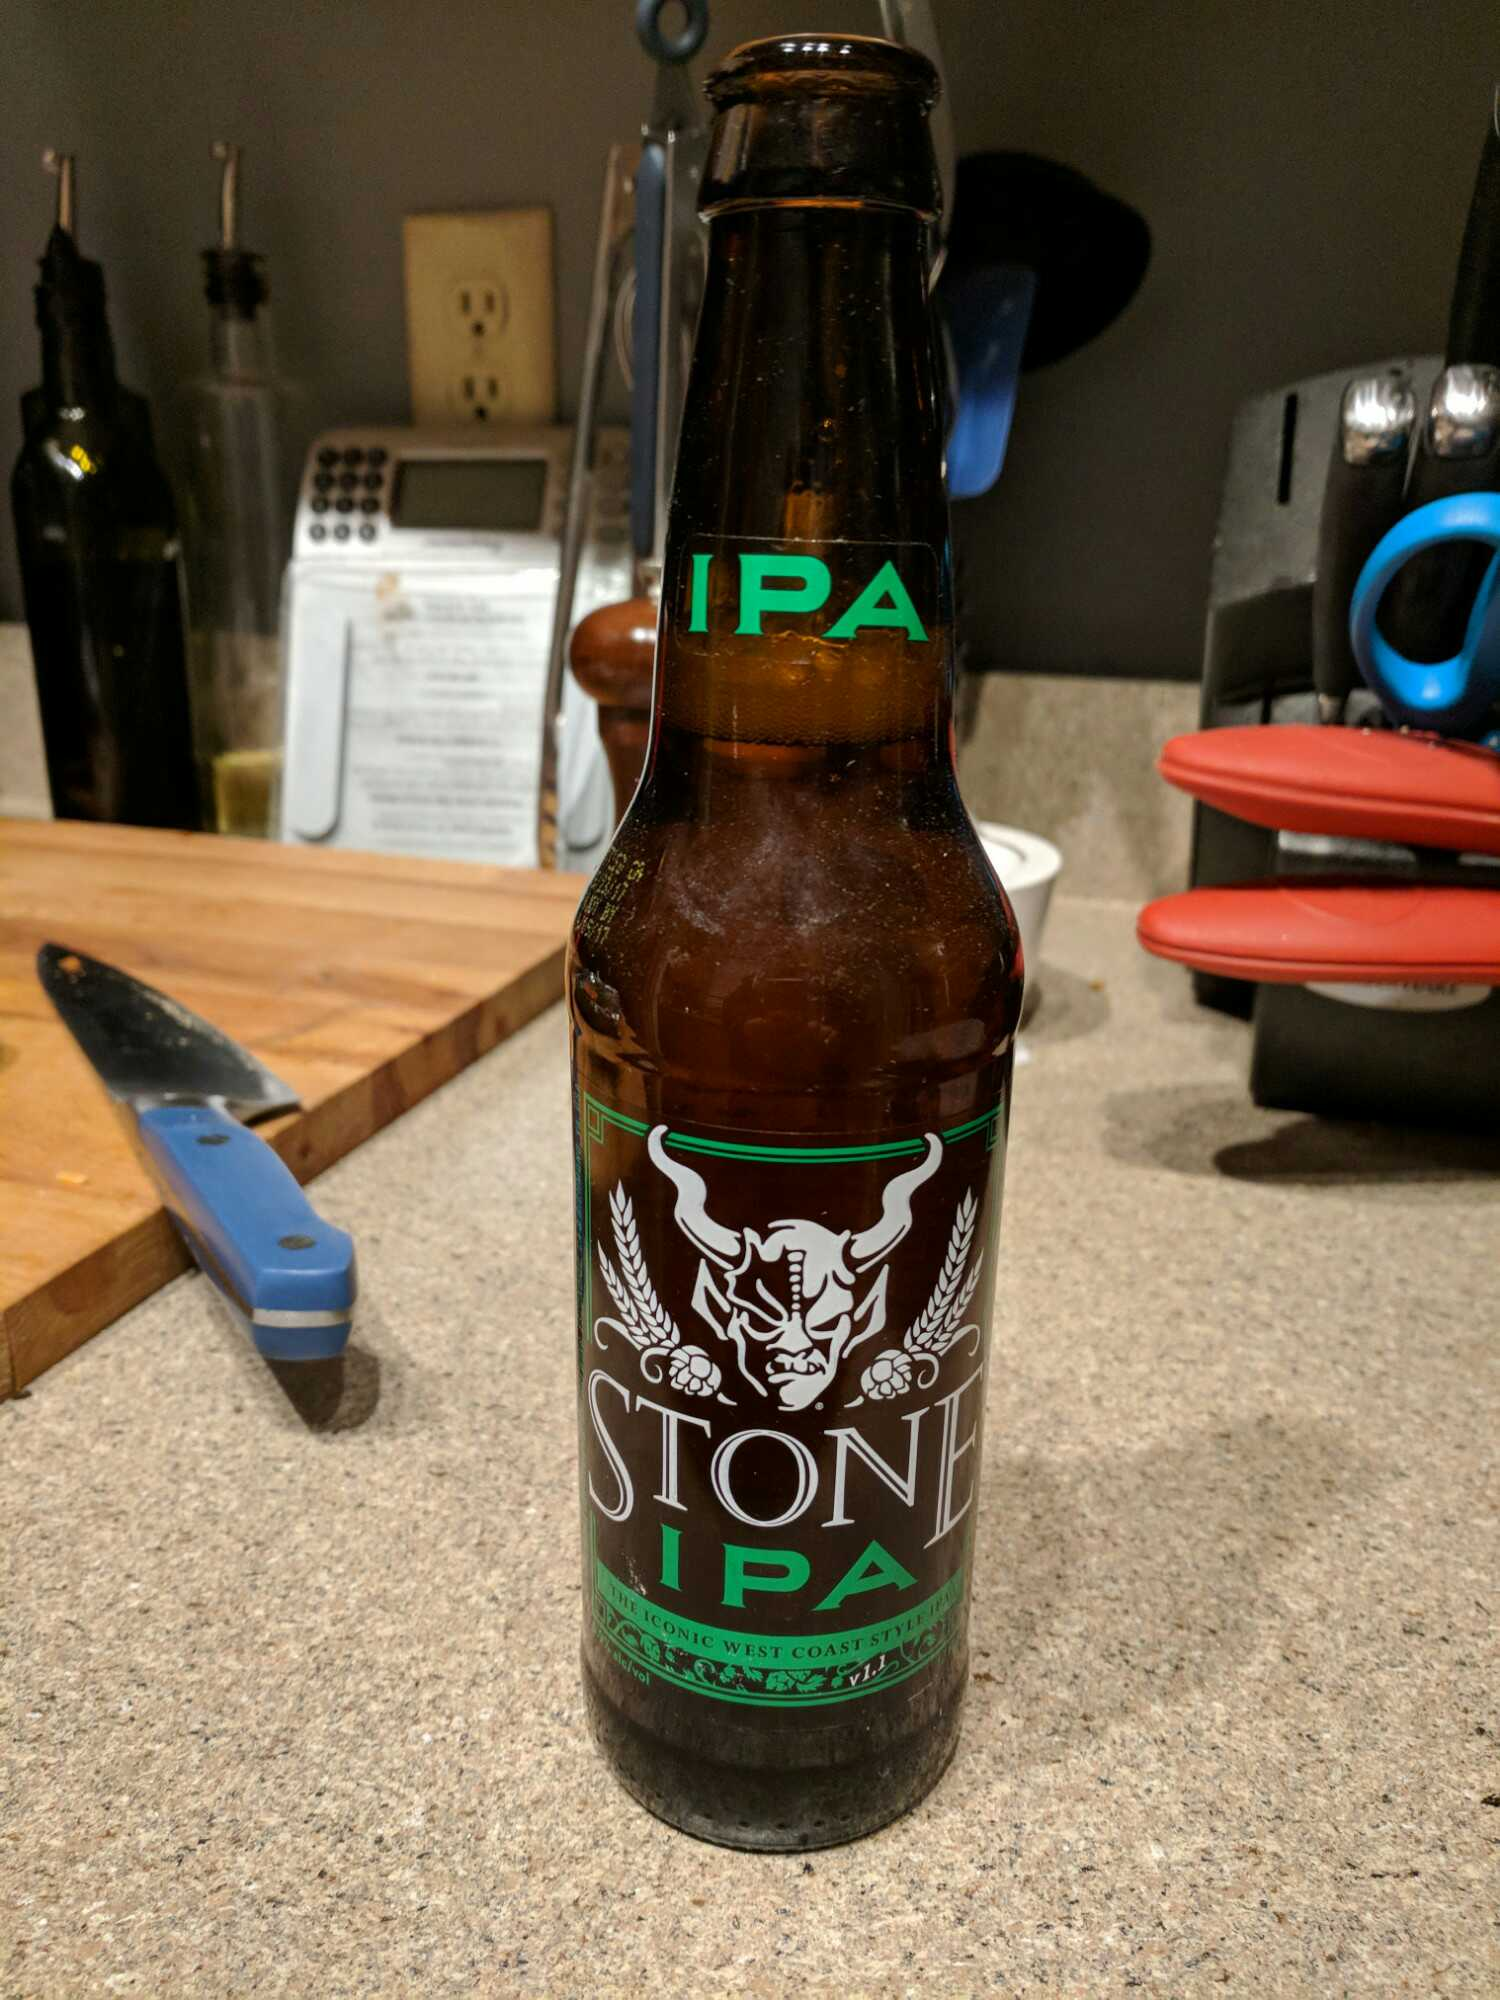 January 31, 2018 Stone Brewing - Stone IPA